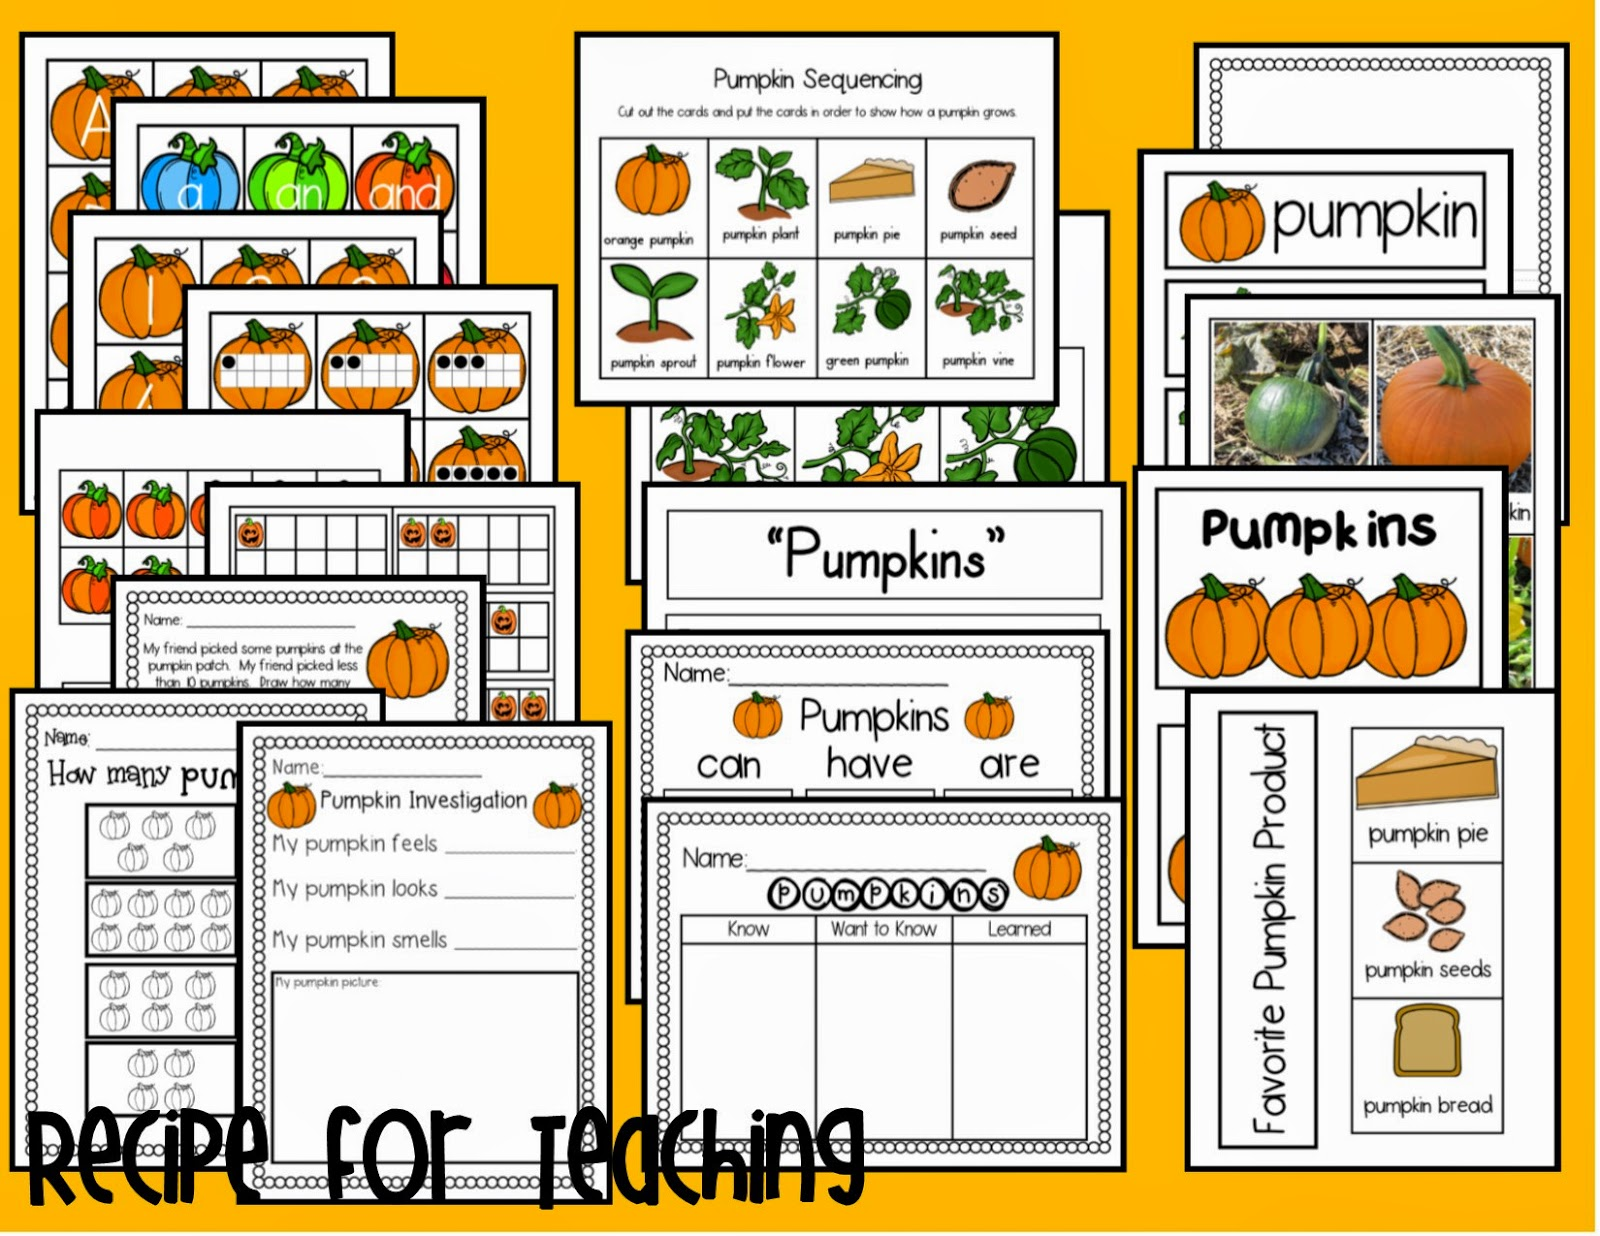 http://www.teacherspayteachers.com/Product/Pumpkin-Activities-1465895